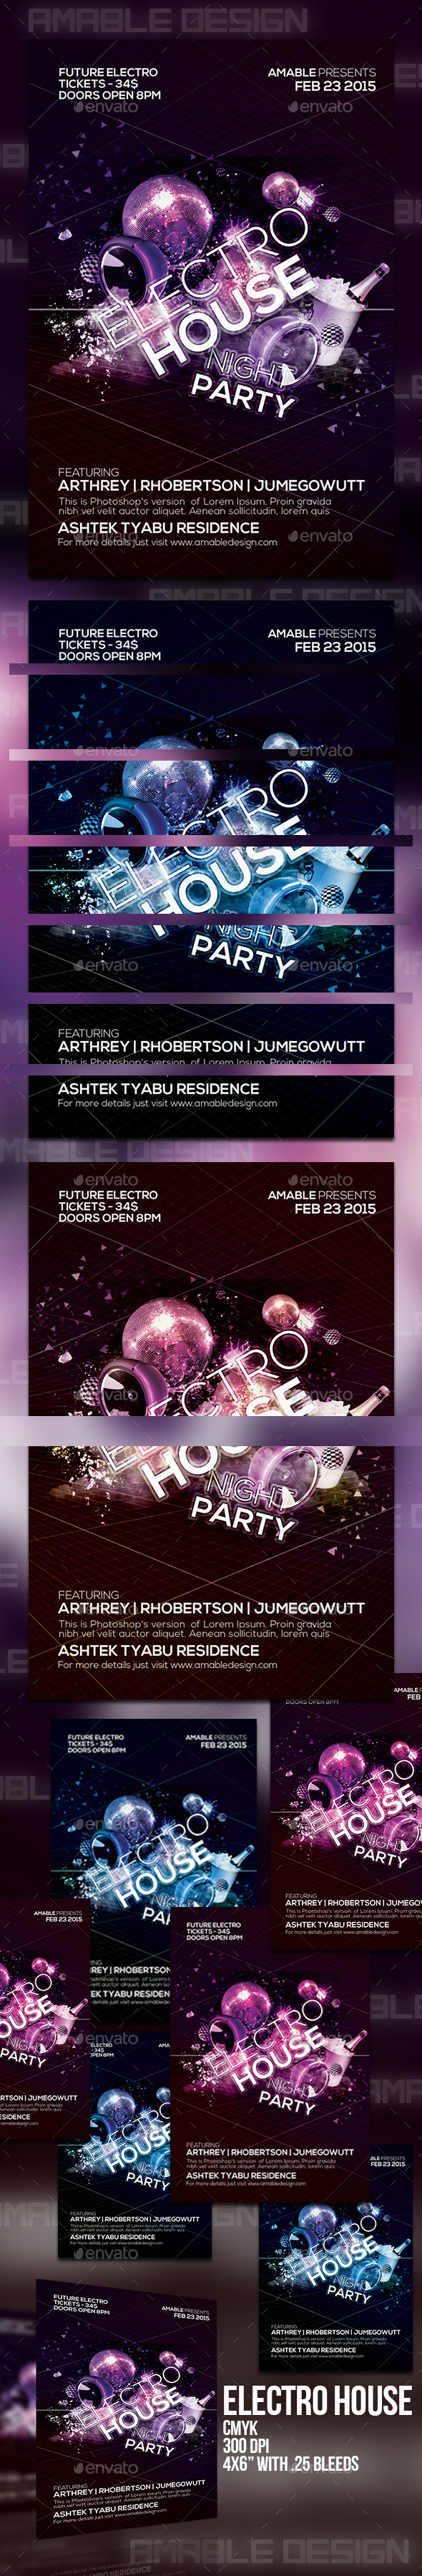 GraphicRiver Electro House Flyer 10453110